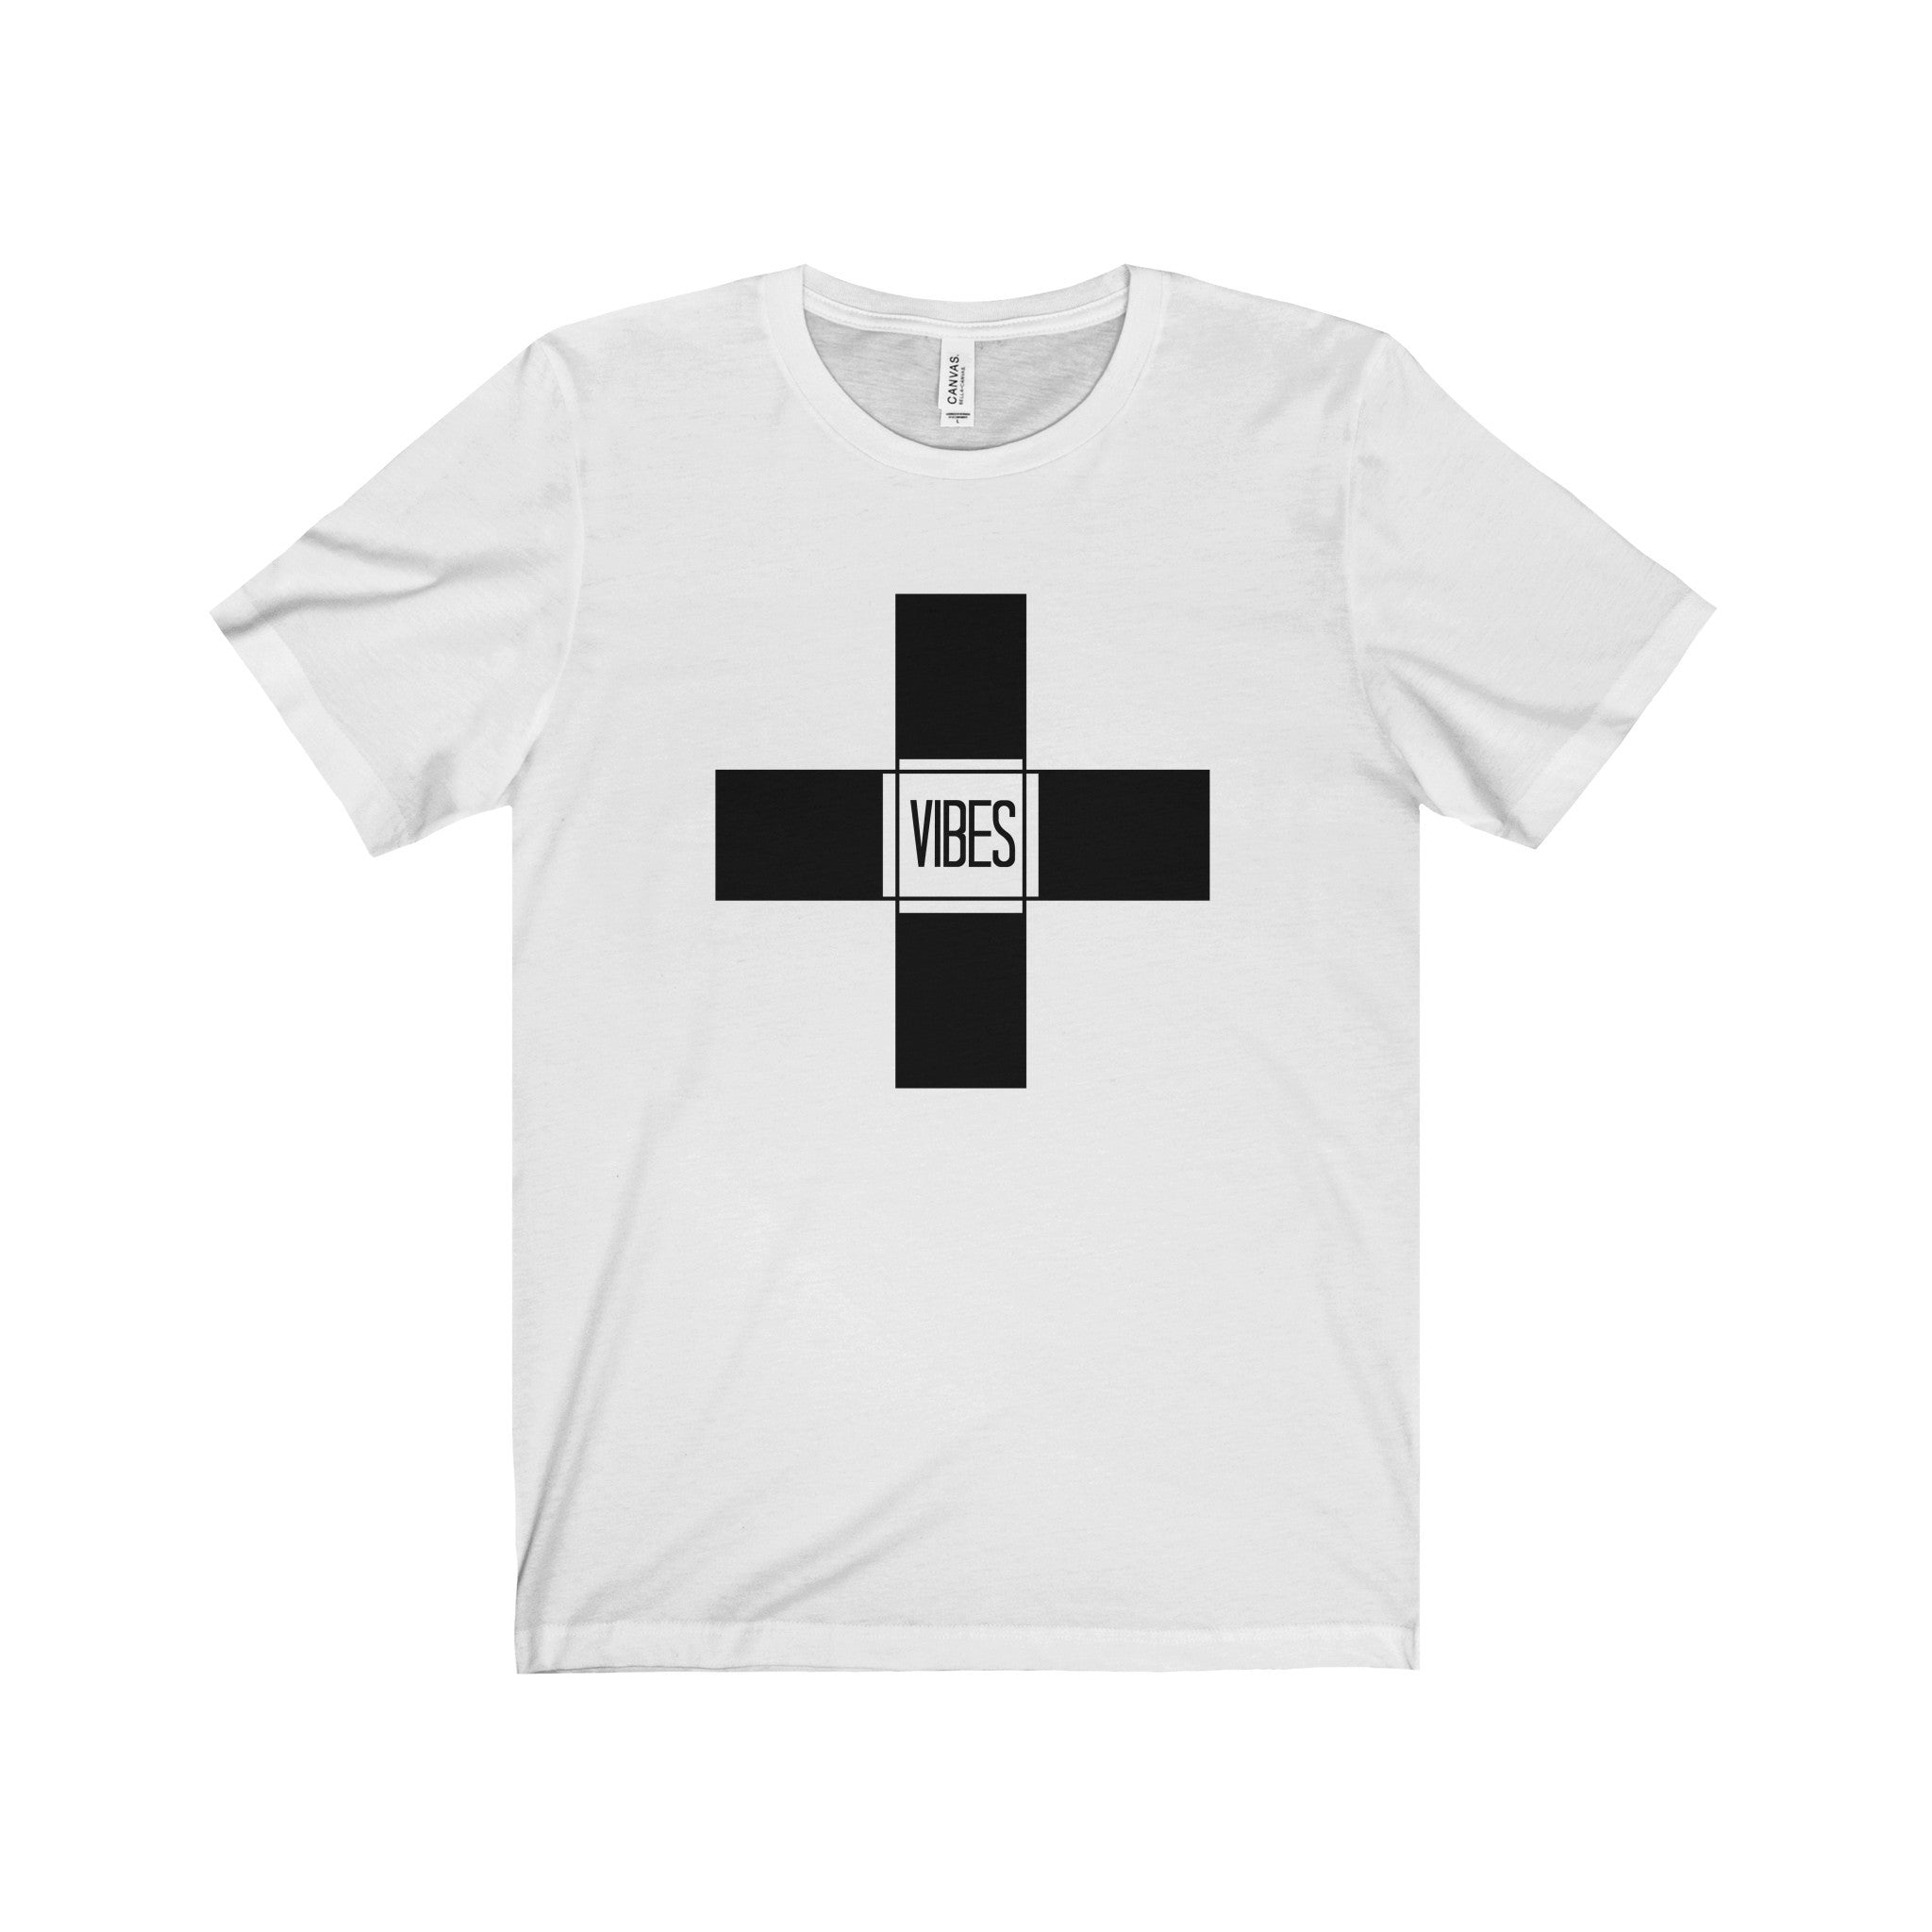 Positive Vibes Solid Black Letter Tee (5 colors available)